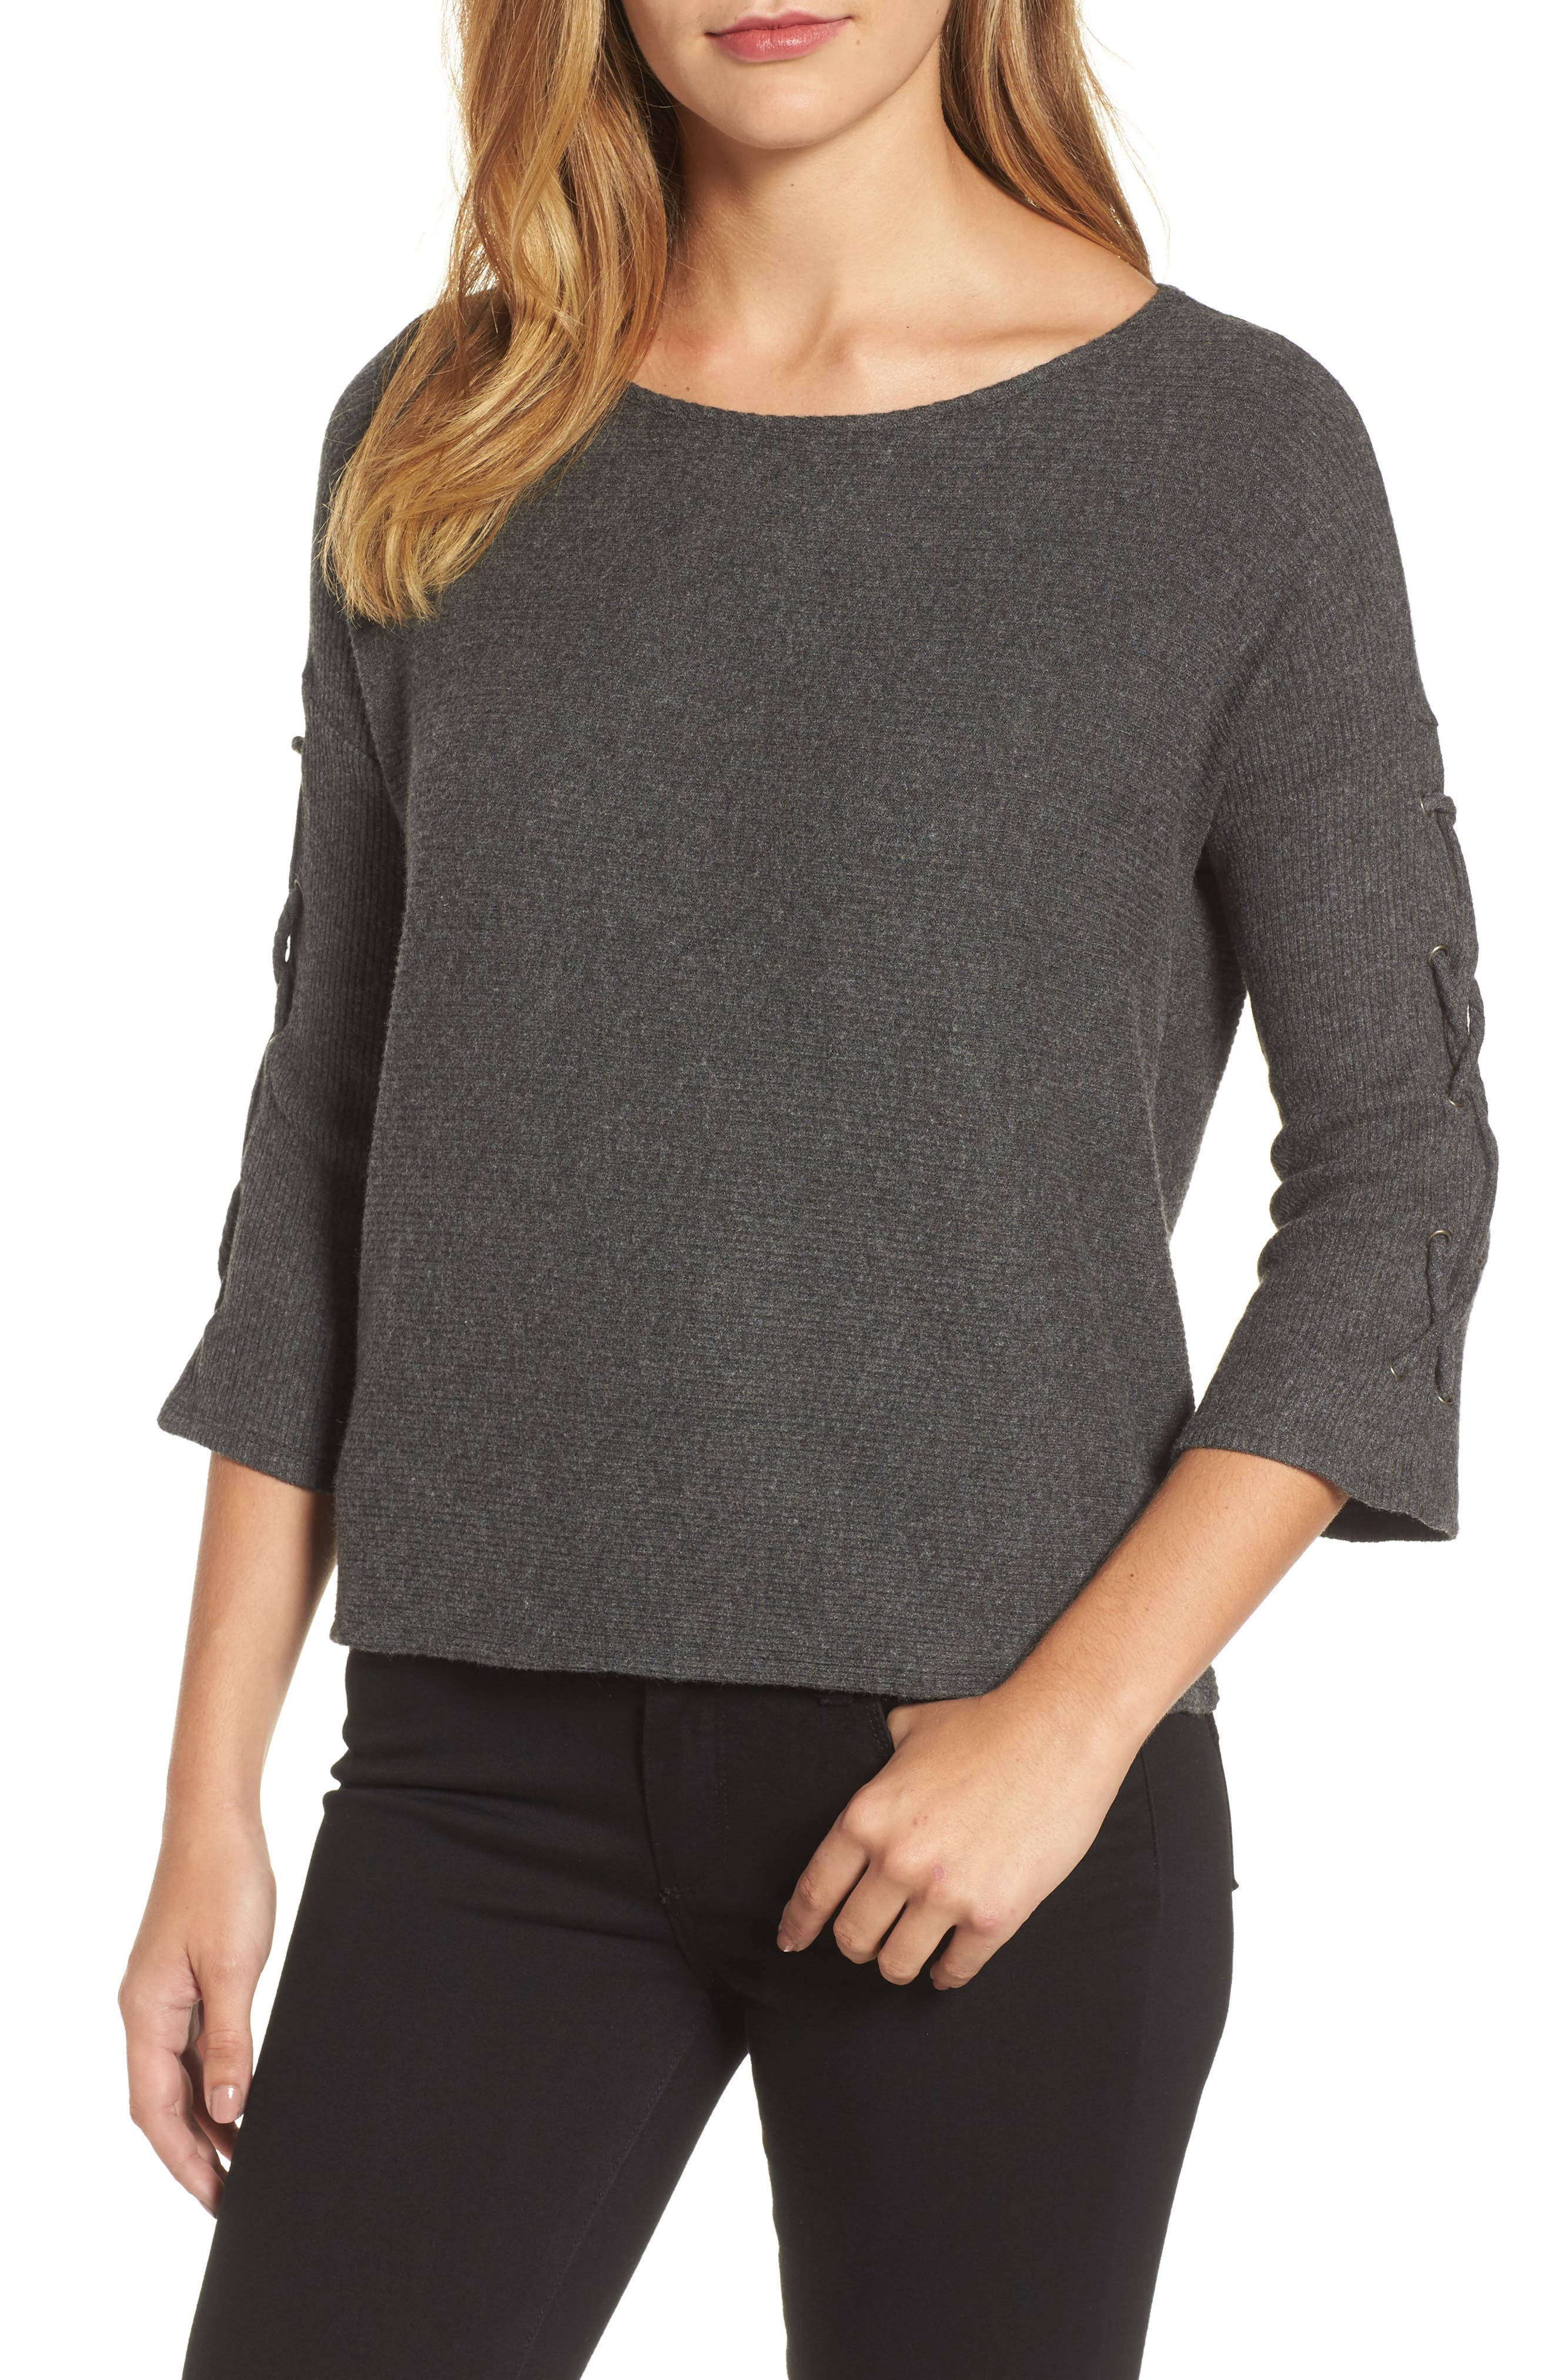 Velvet by Graham & Spencer Lace-Up Sleeve Ribbed Top